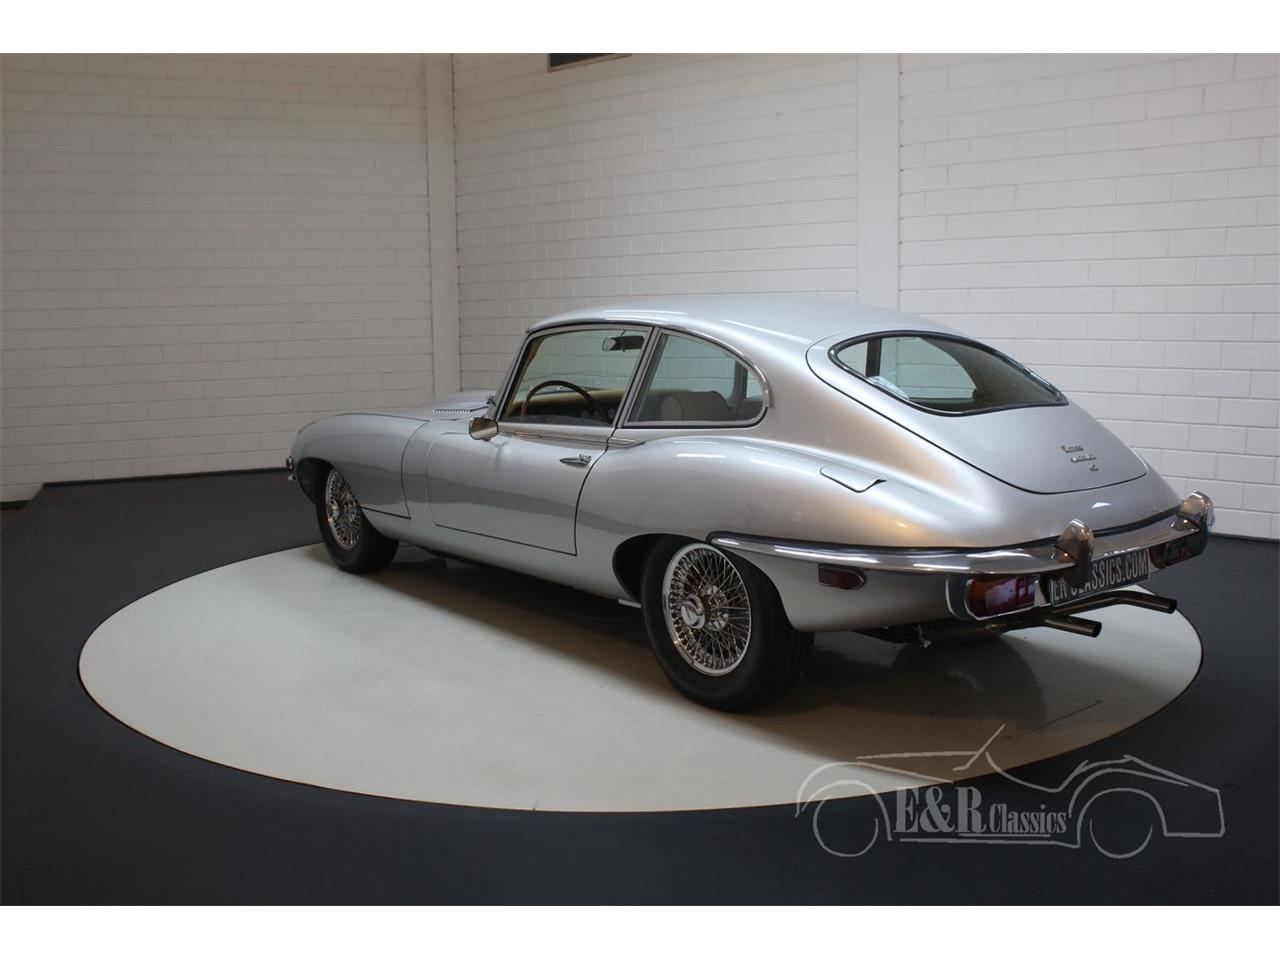 Large Picture of Classic '69 E-Type located in Waalwijk noord brabant - $101,000.00 - PRSR